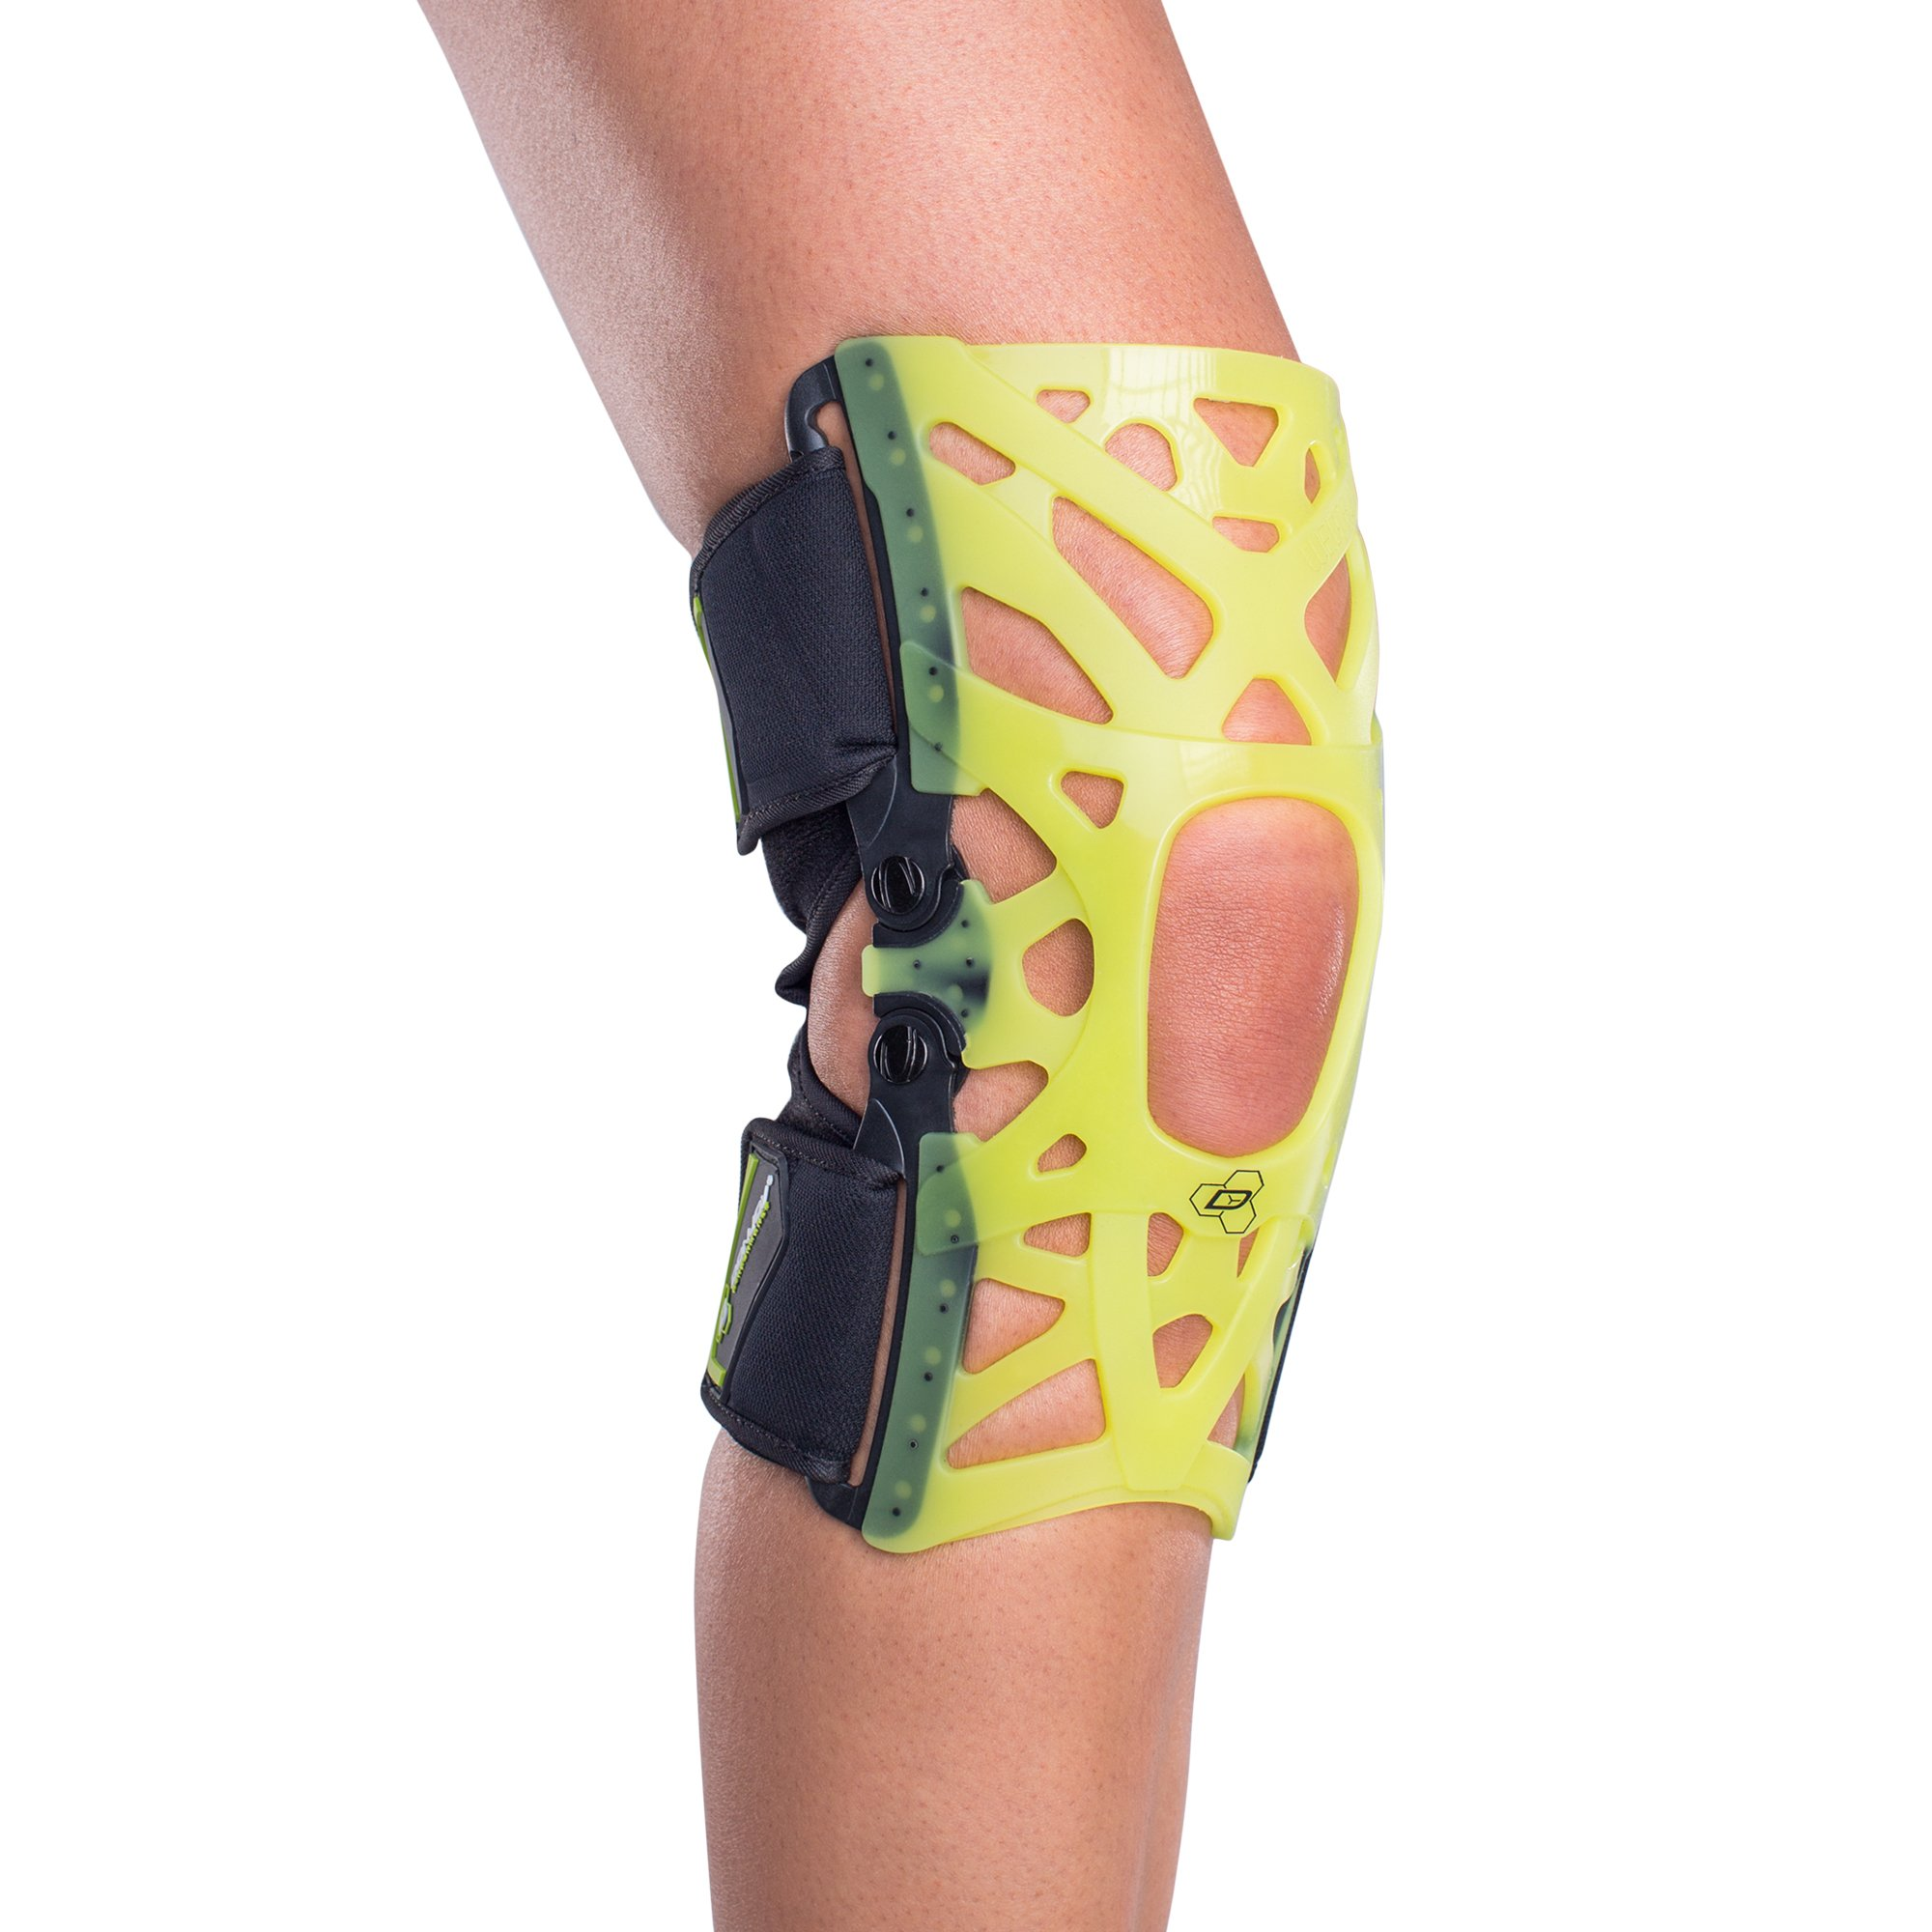 DonJoy Performance WEBTECH Knee Support Brace with Compression Undersleeve: Slime Green, Large by DonJoy Performance